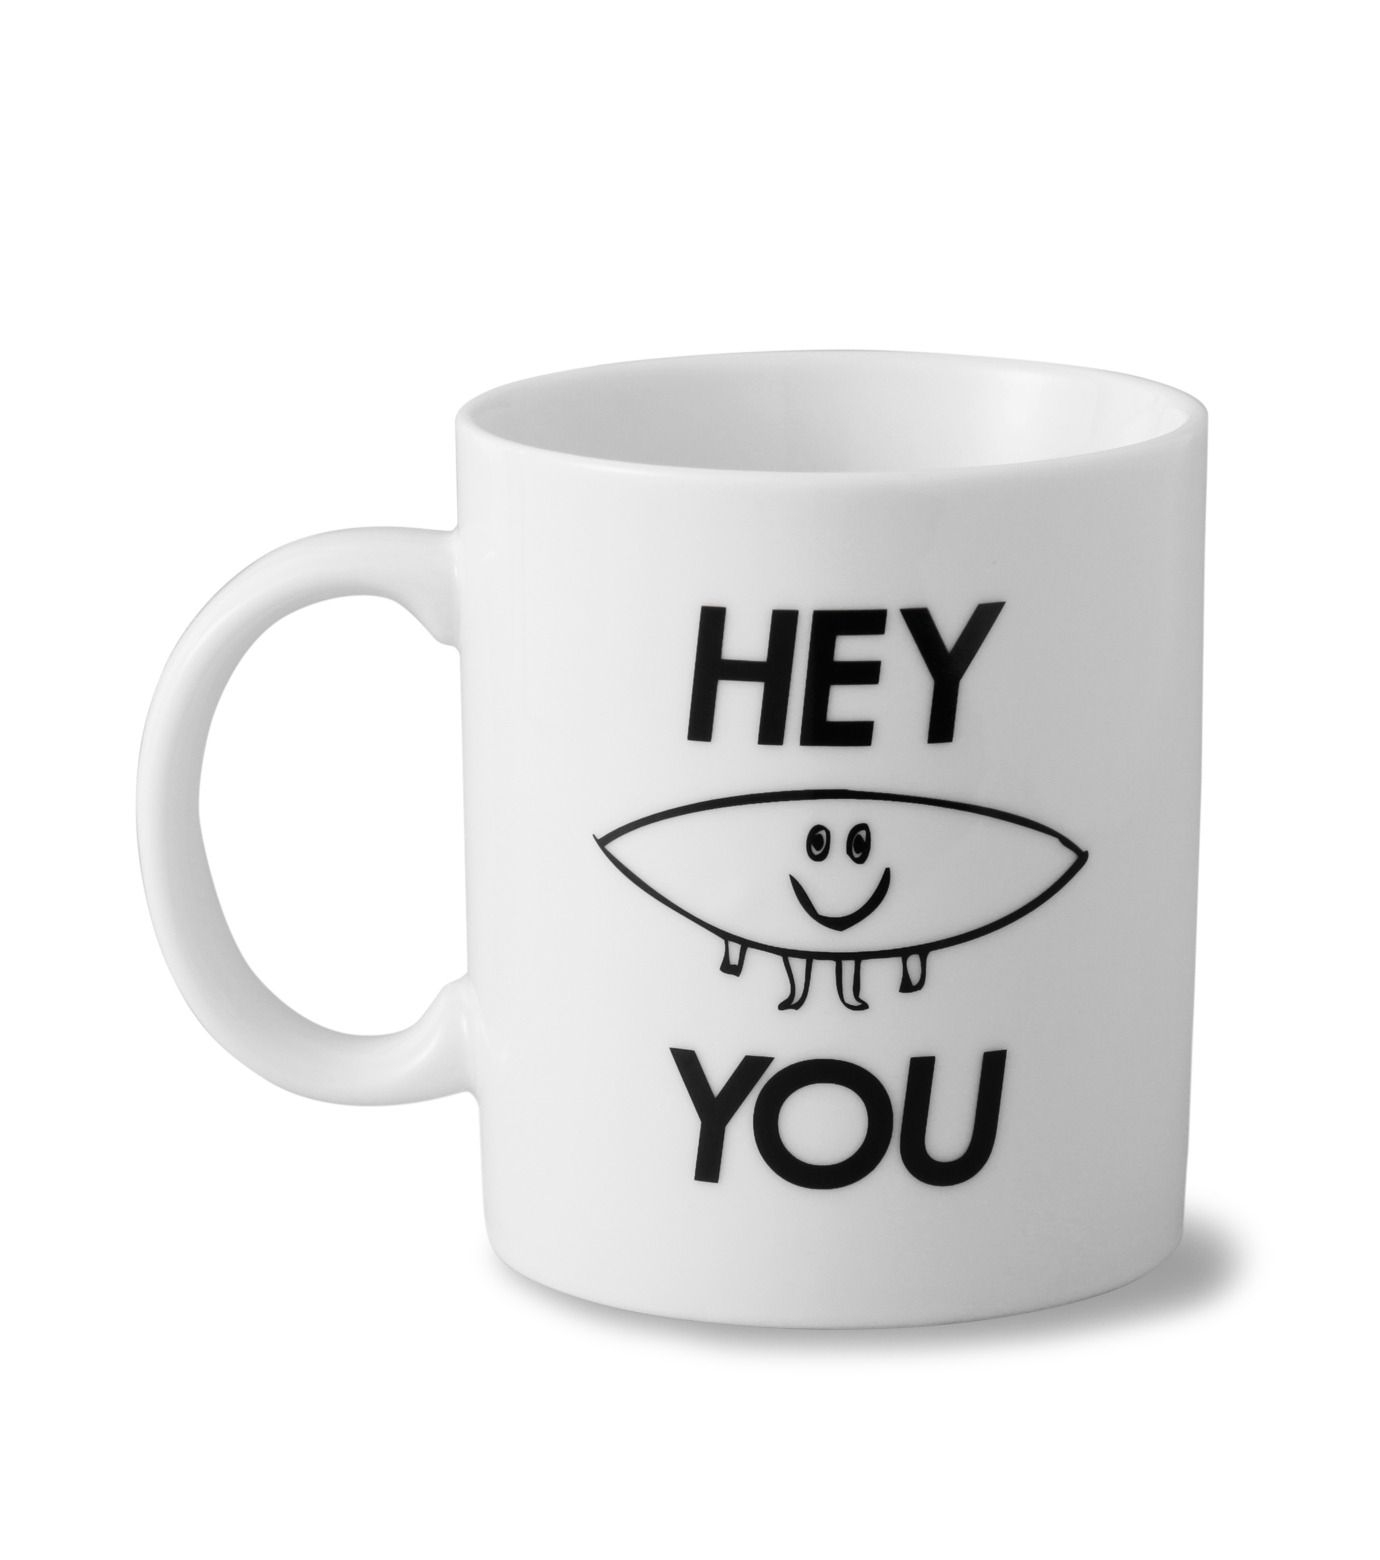 HEY YOU !(ヘイユウ)のBOARD MUG CUP-WHITE(キッチン/kitchen)-BOAD-MAG-4 拡大詳細画像1